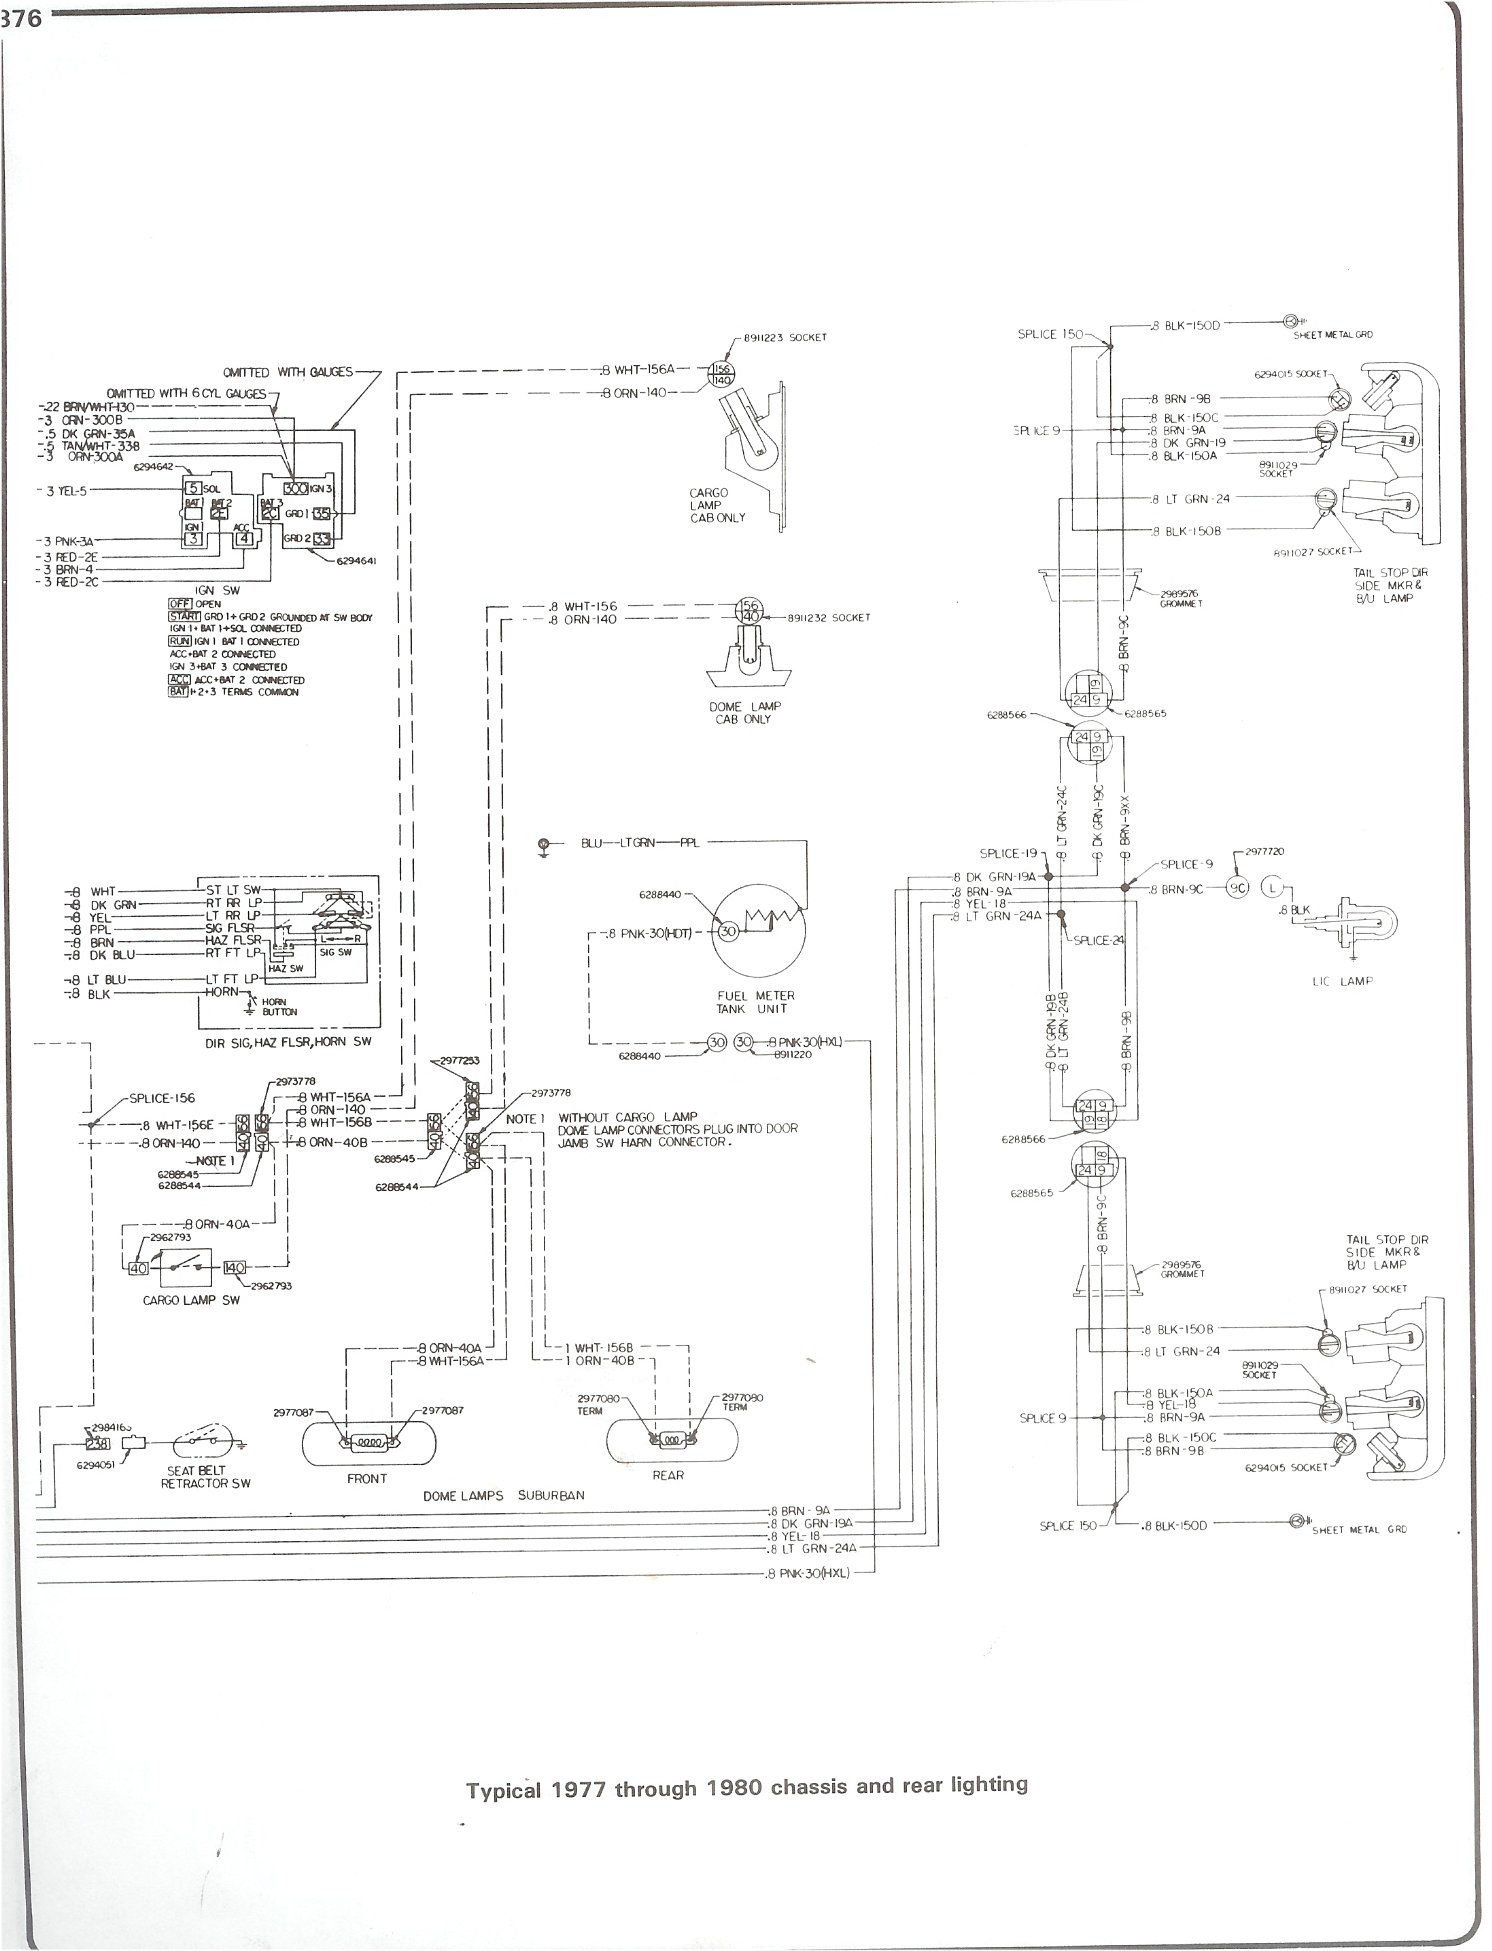 Complete 73 87 Wiring Diagrams 1987 Chev Pickup Diagram Fuel 77 80 Chassis And Rear Lighting